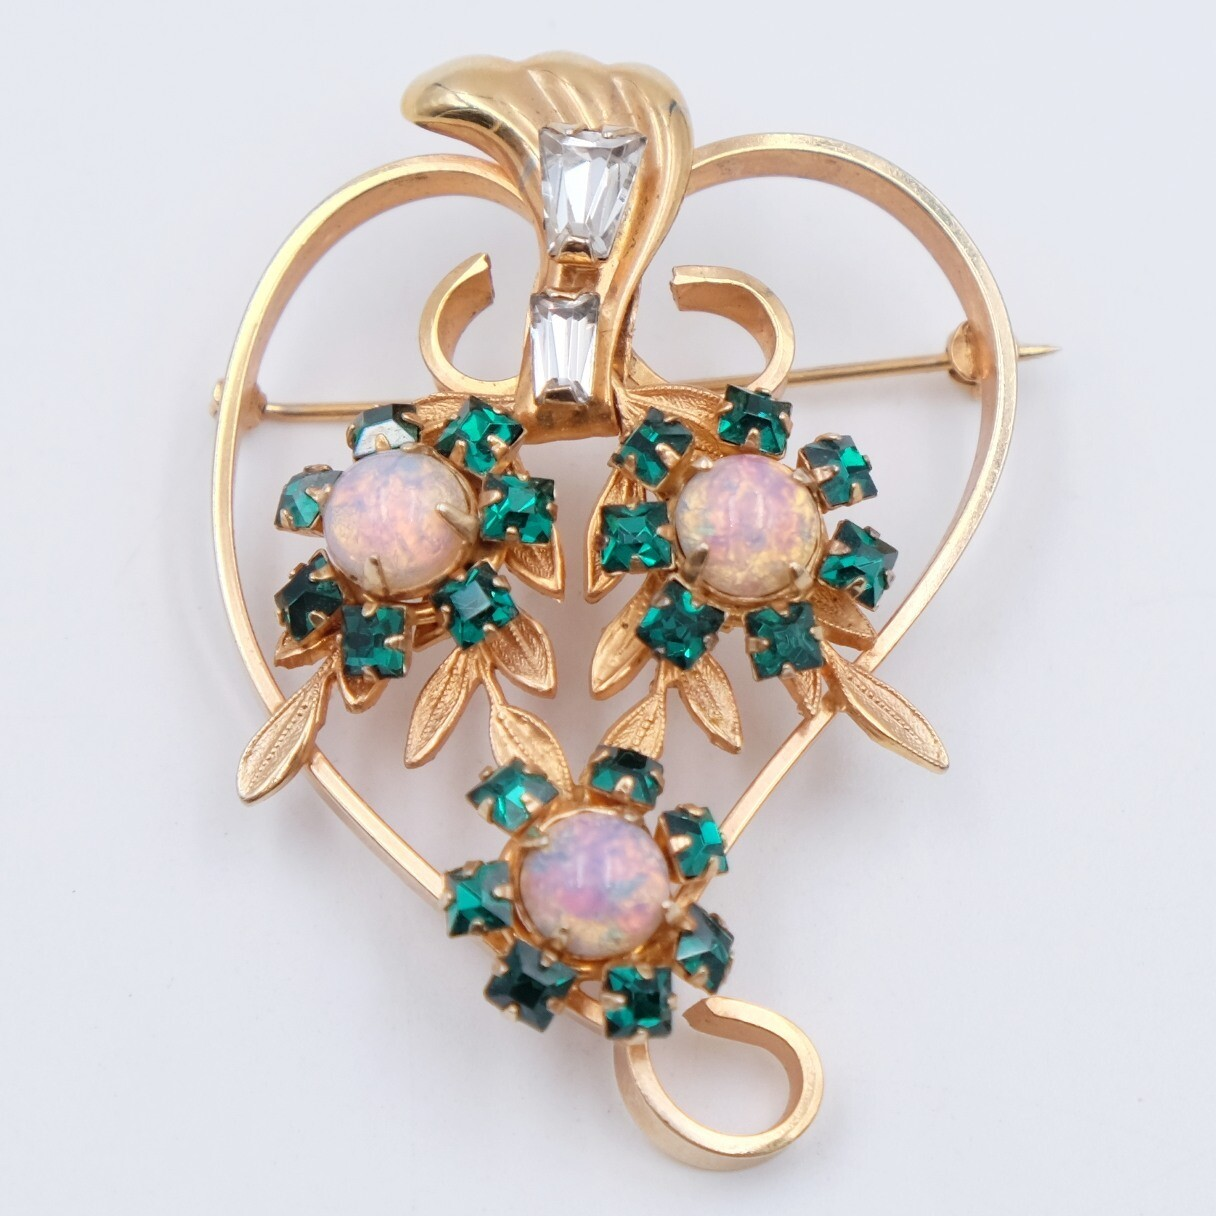 Vintage Faux Opals Brooch 1930s Gold Filled